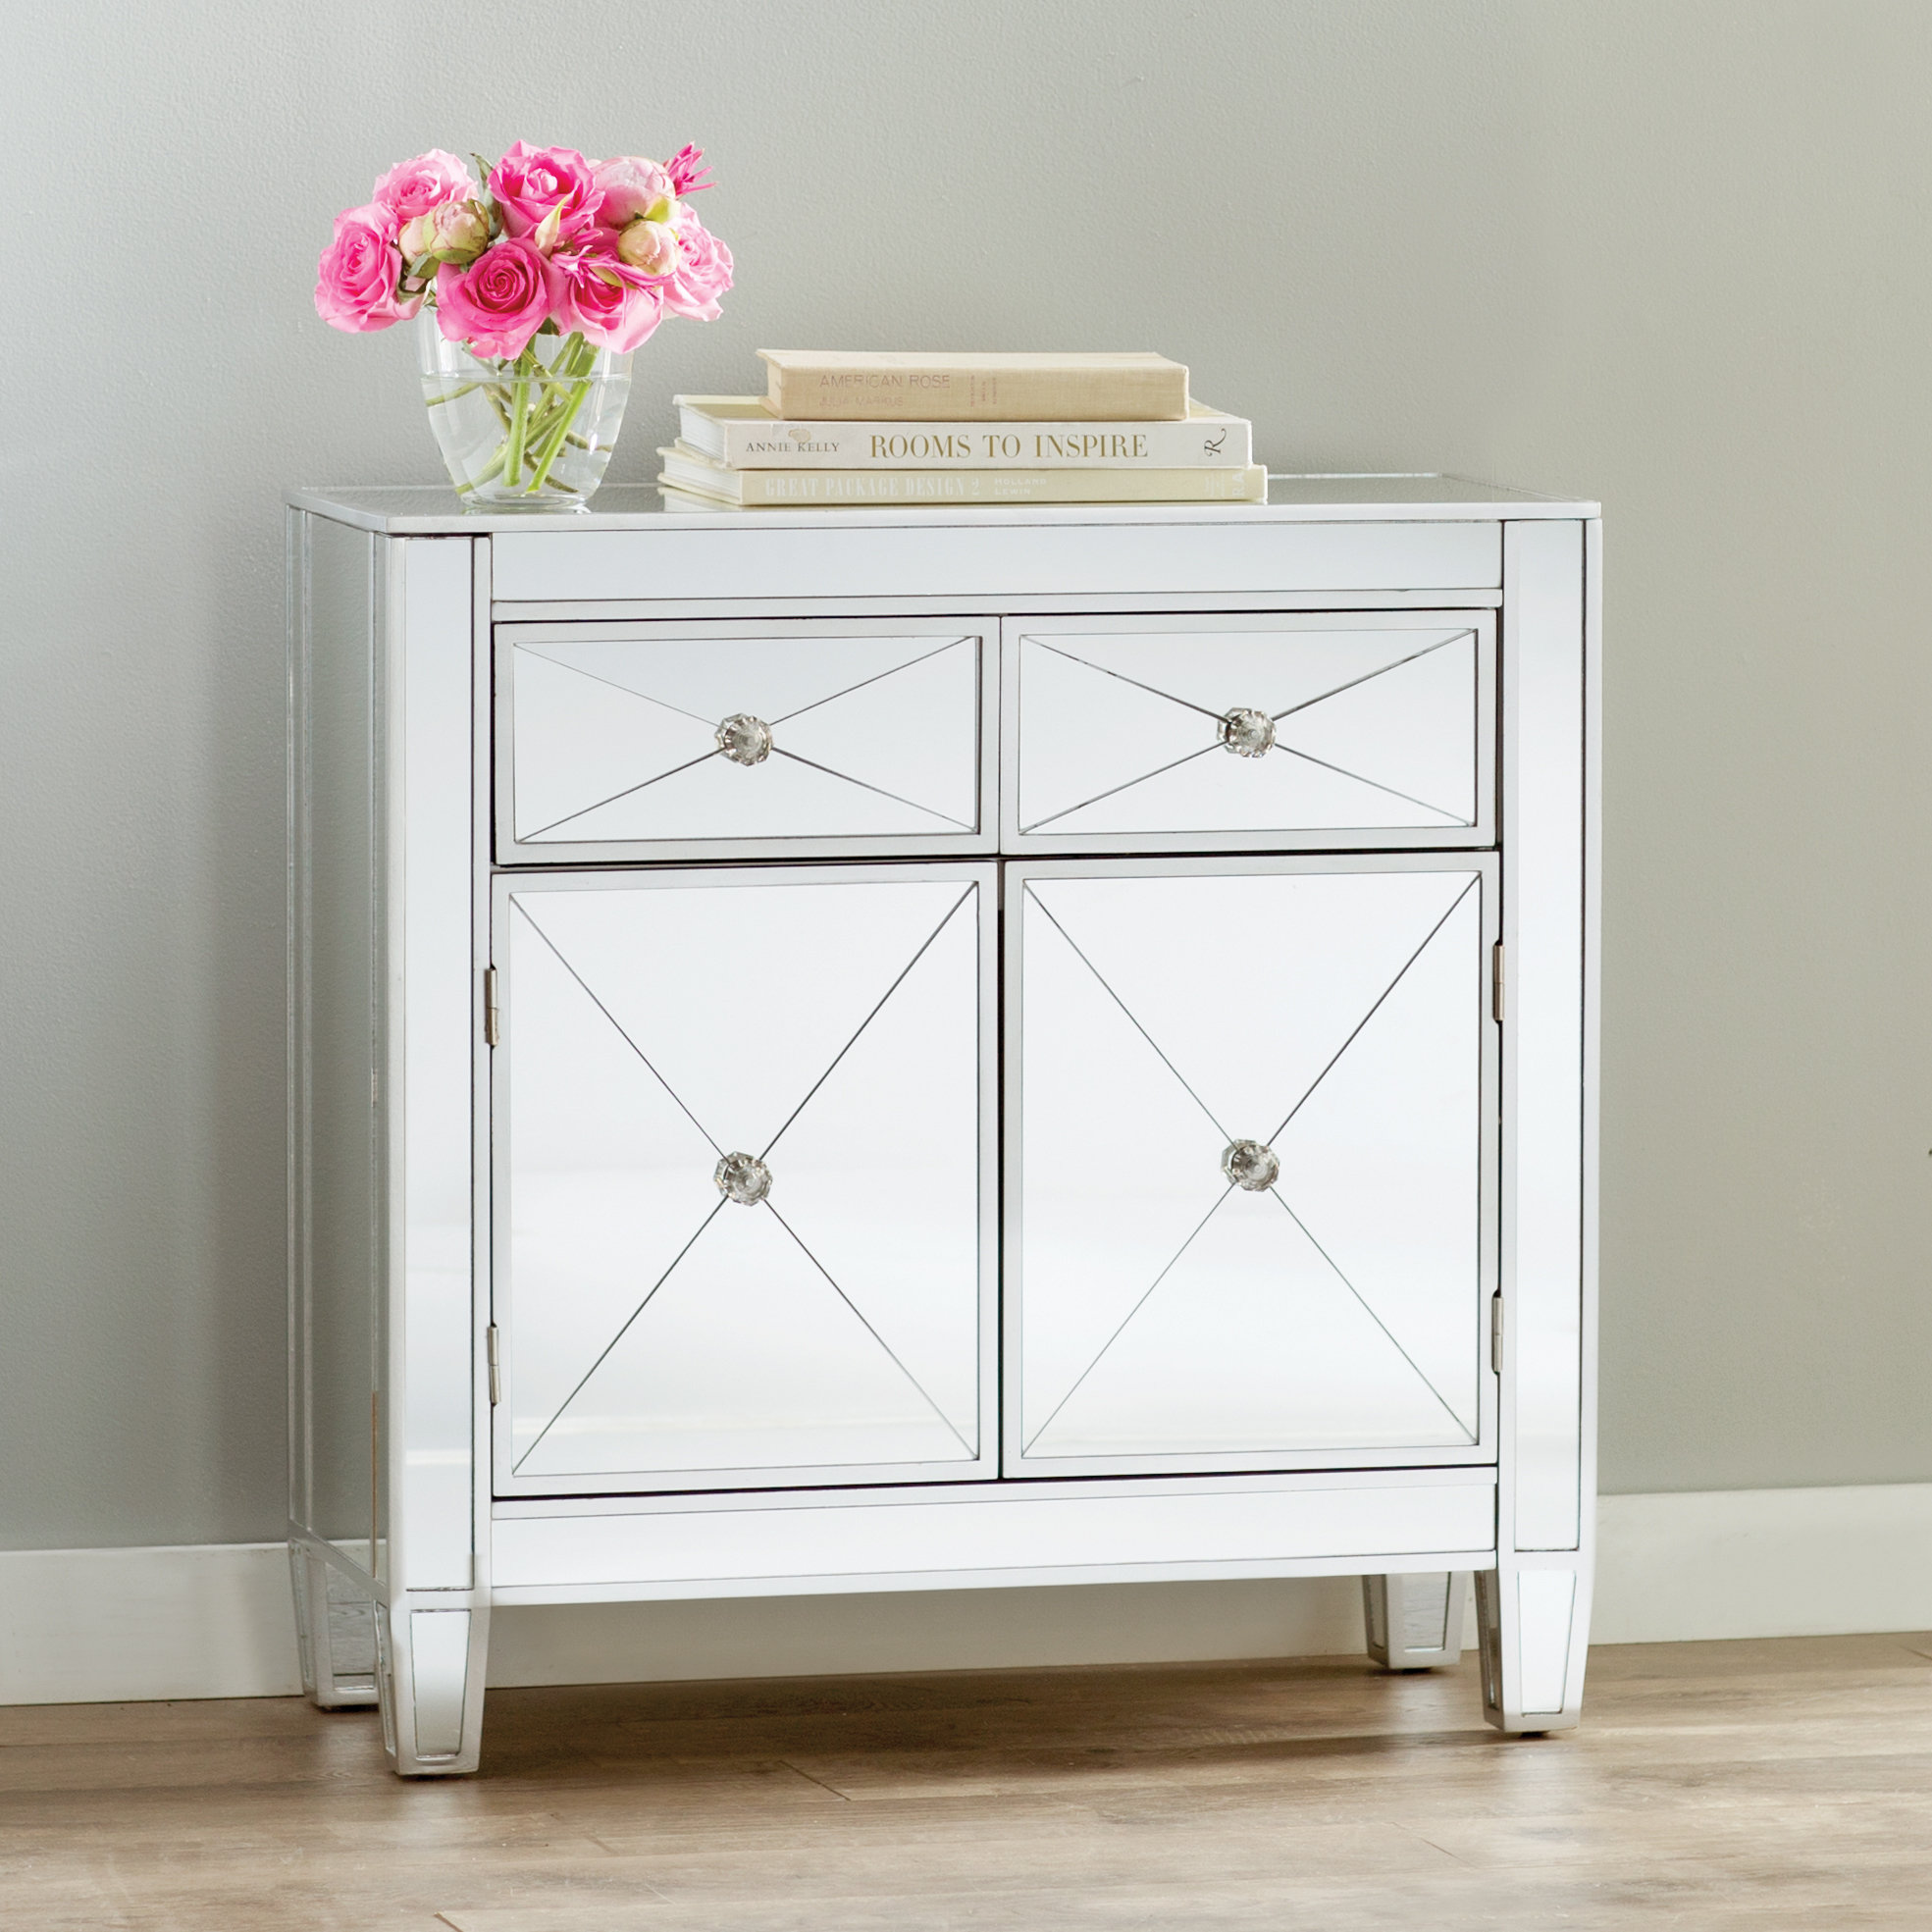 willa arlo interiors lavinia drawer accent cabinet reviews room essentials table instructions clearance cabinets round pedestal entry large floor mirror pool umbrella stand unique